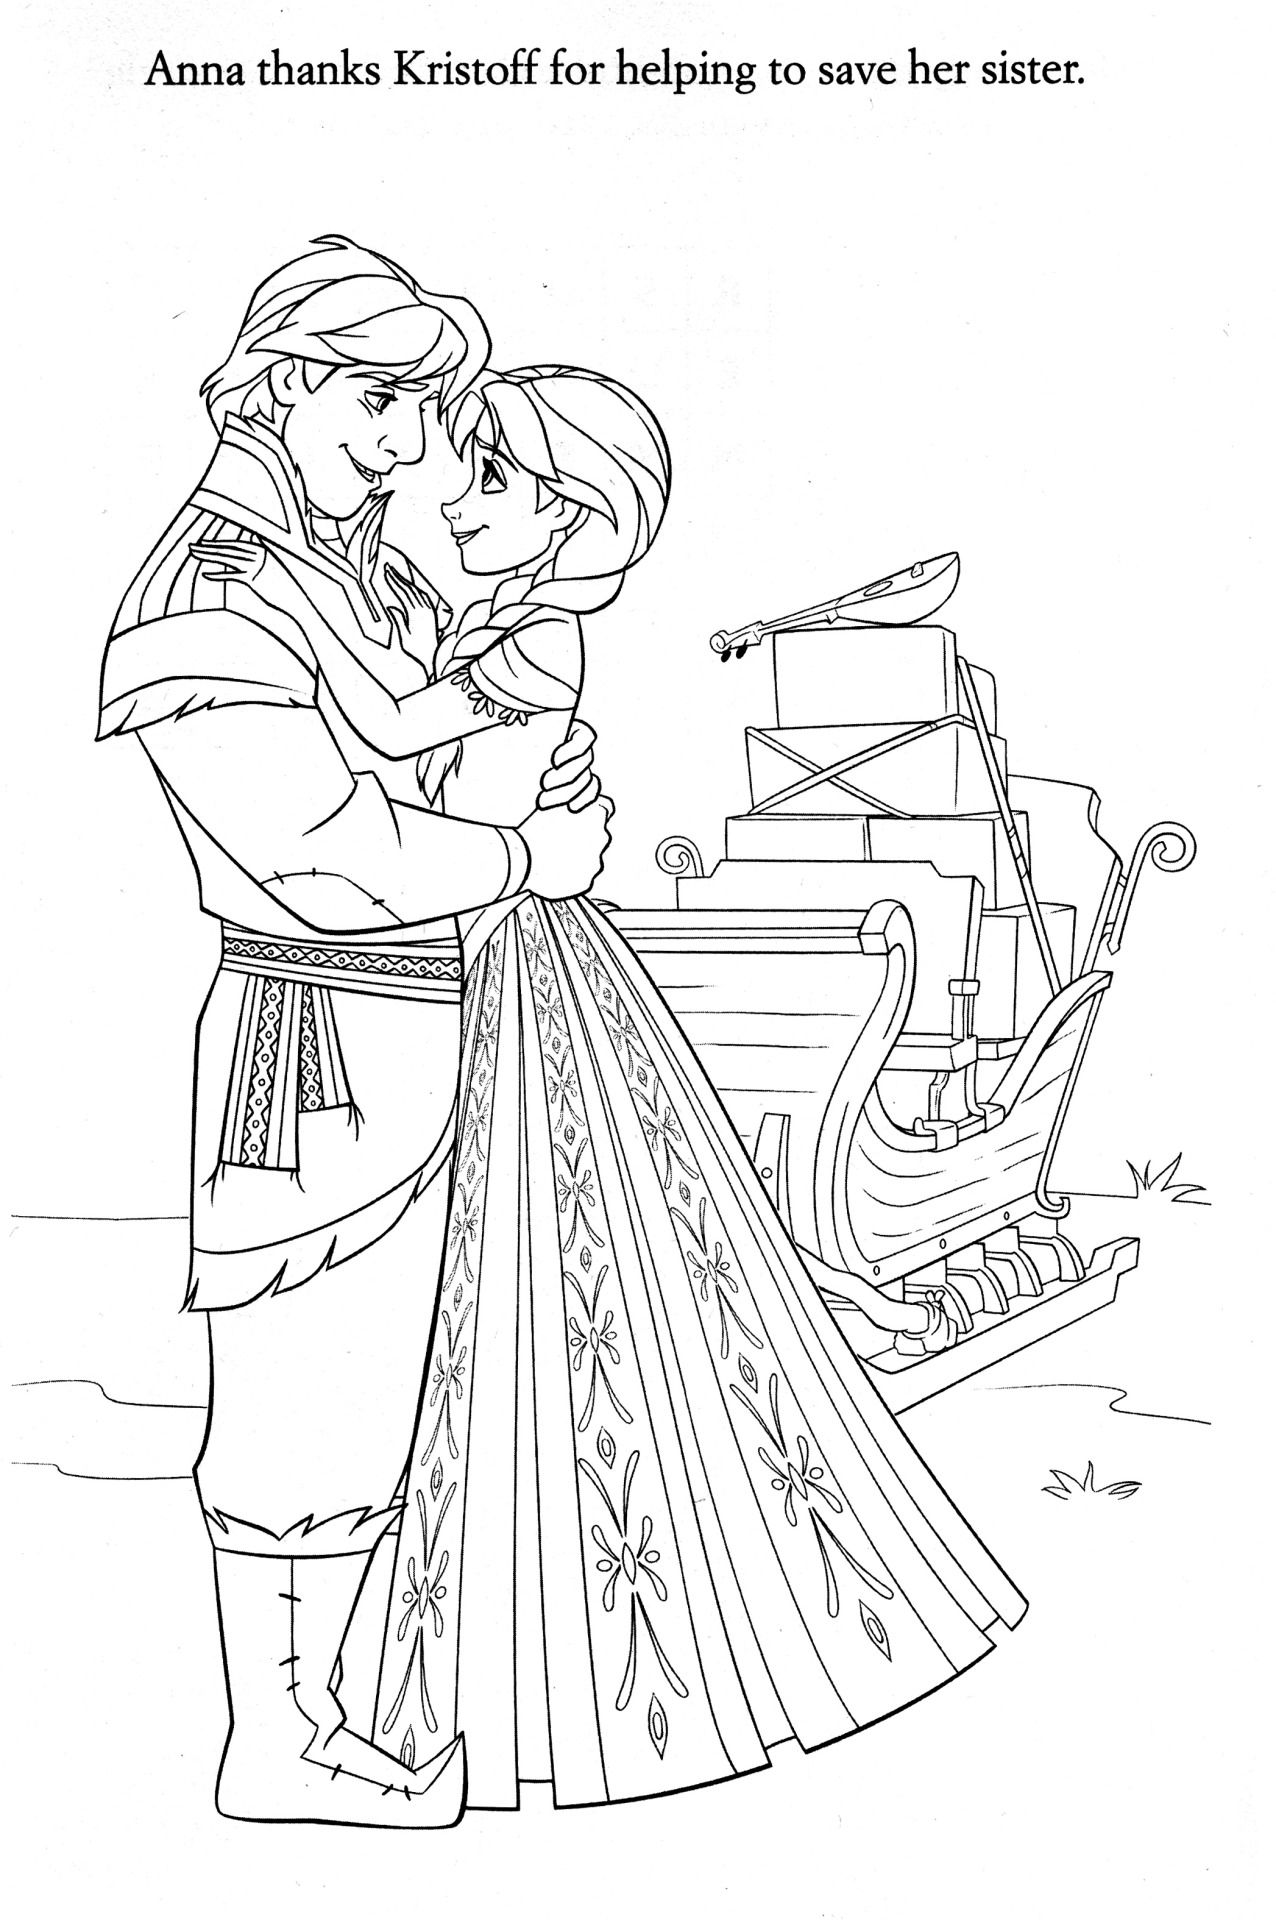 Disney Coloring Pages Silly Coloring Book People That S Not What She Disney Coloring Pages Frozen Coloring Pages Princess Coloring Pages [ 1920 x 1276 Pixel ]